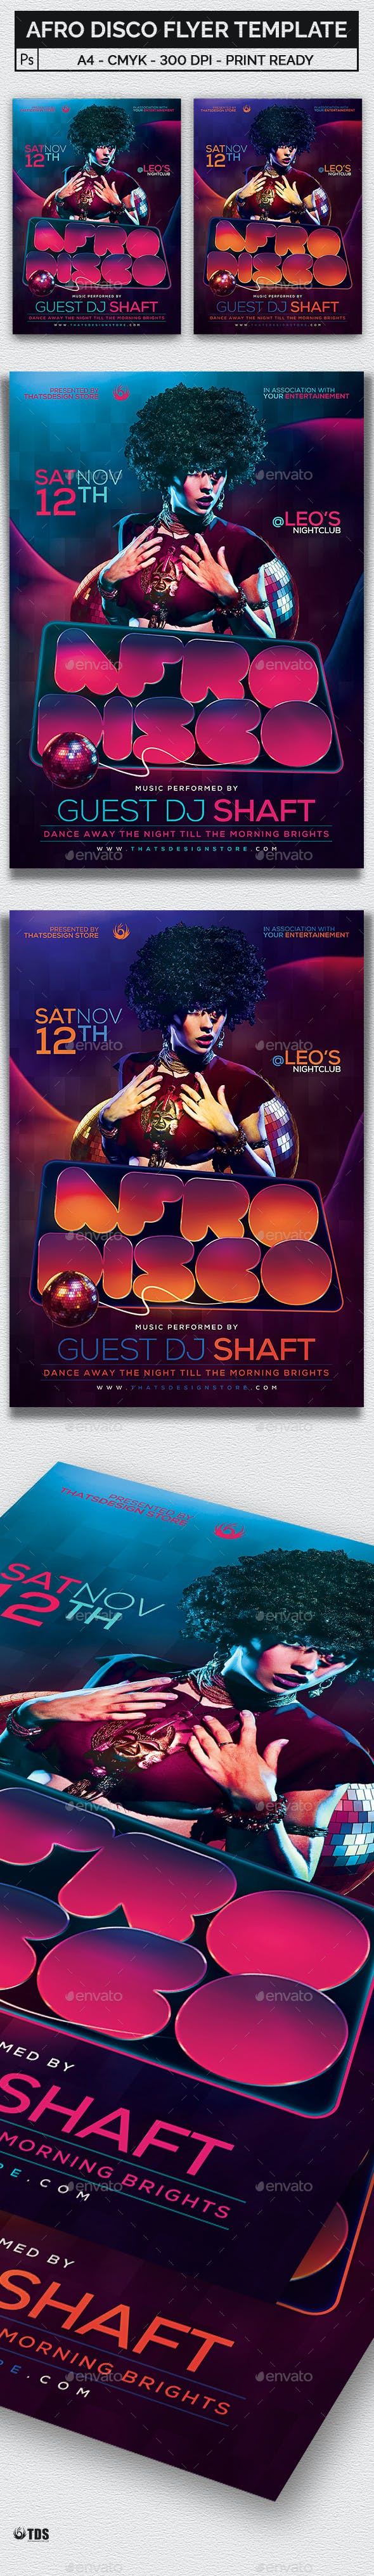 afro disco flyer template by lou606 graphicriver